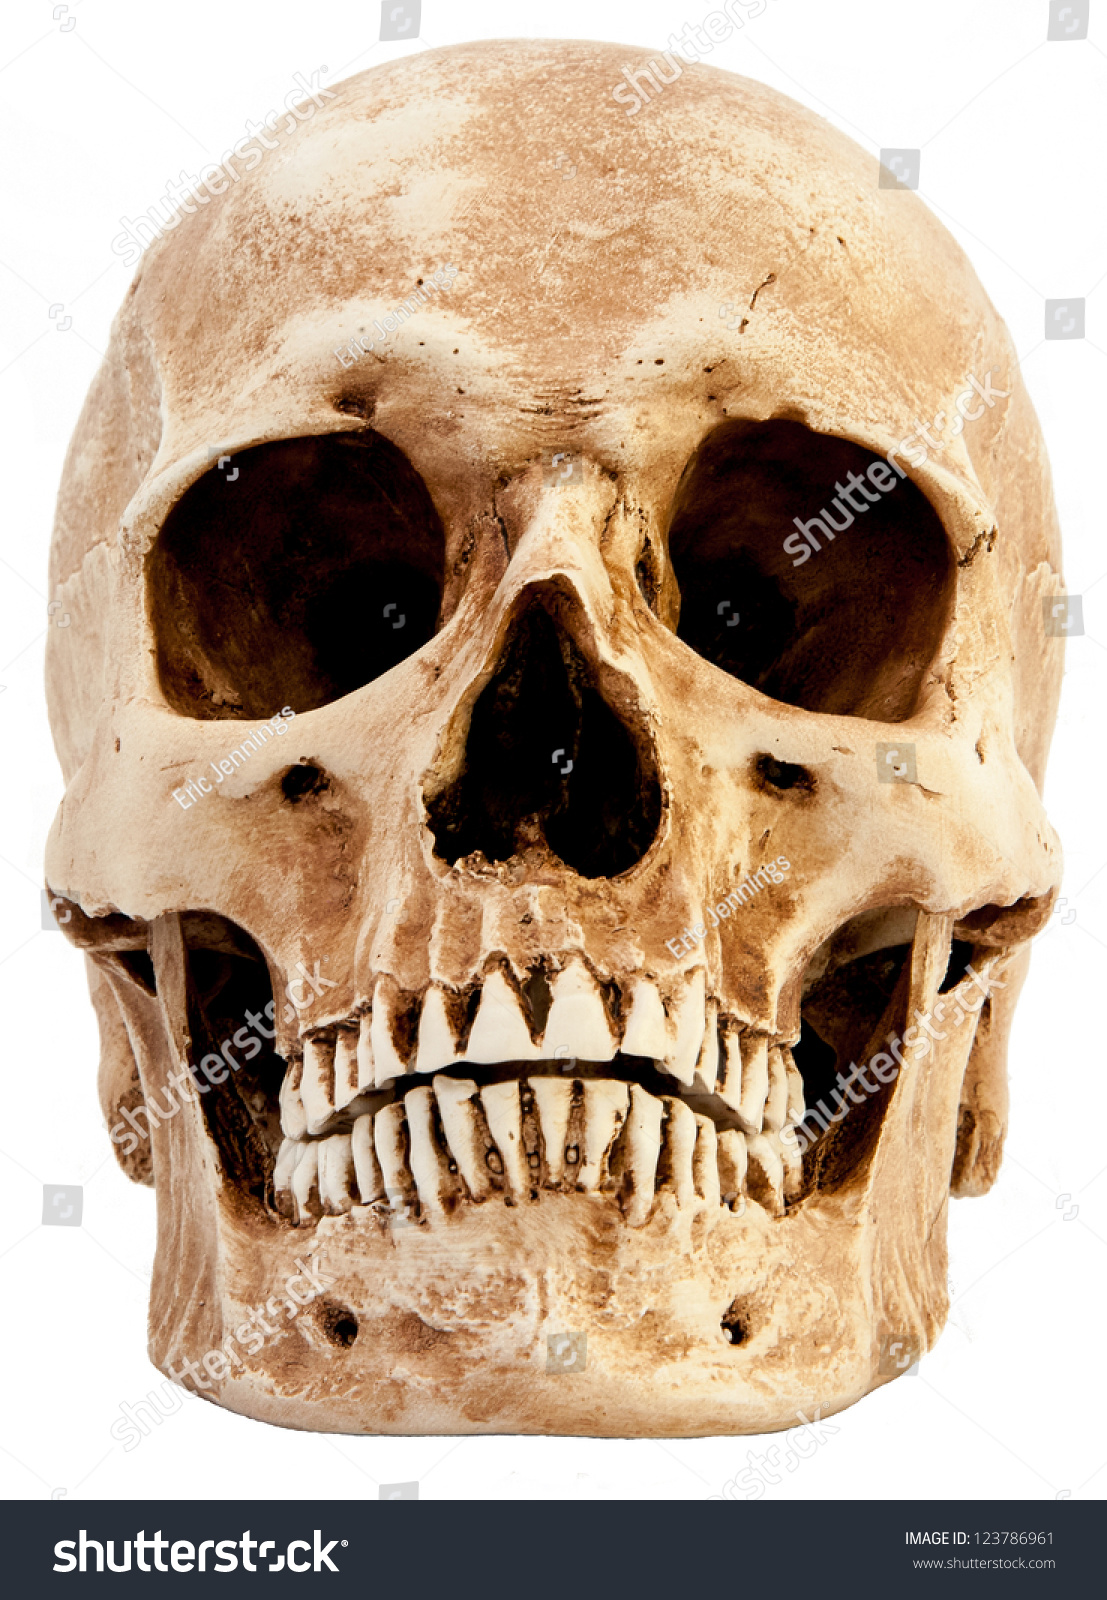 Front View Human Skull Stock Photo